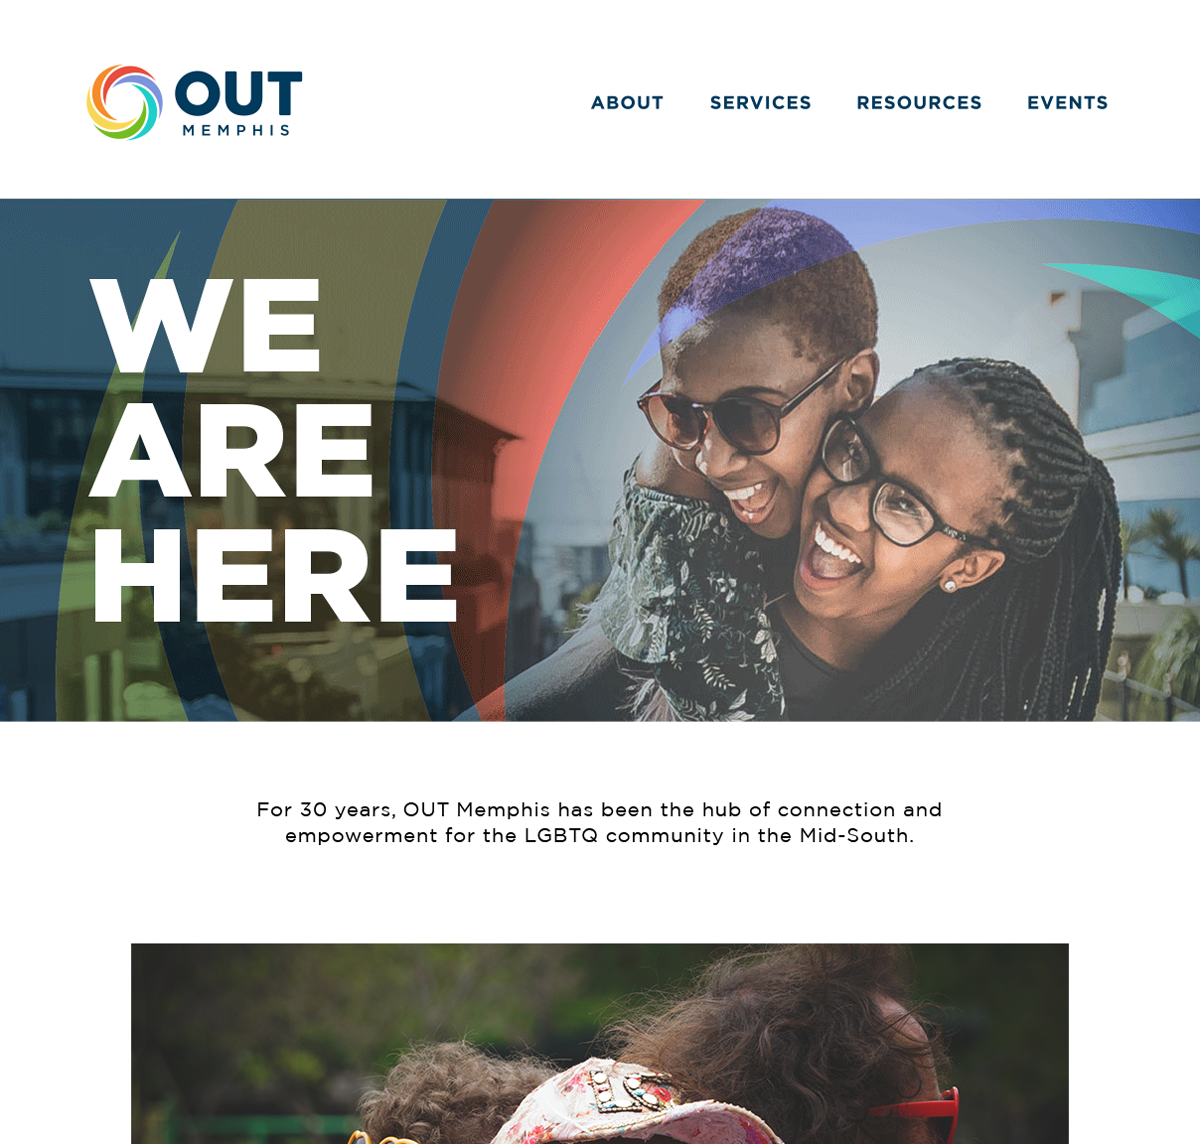 OUTMemphis log and website design with campaign as focus